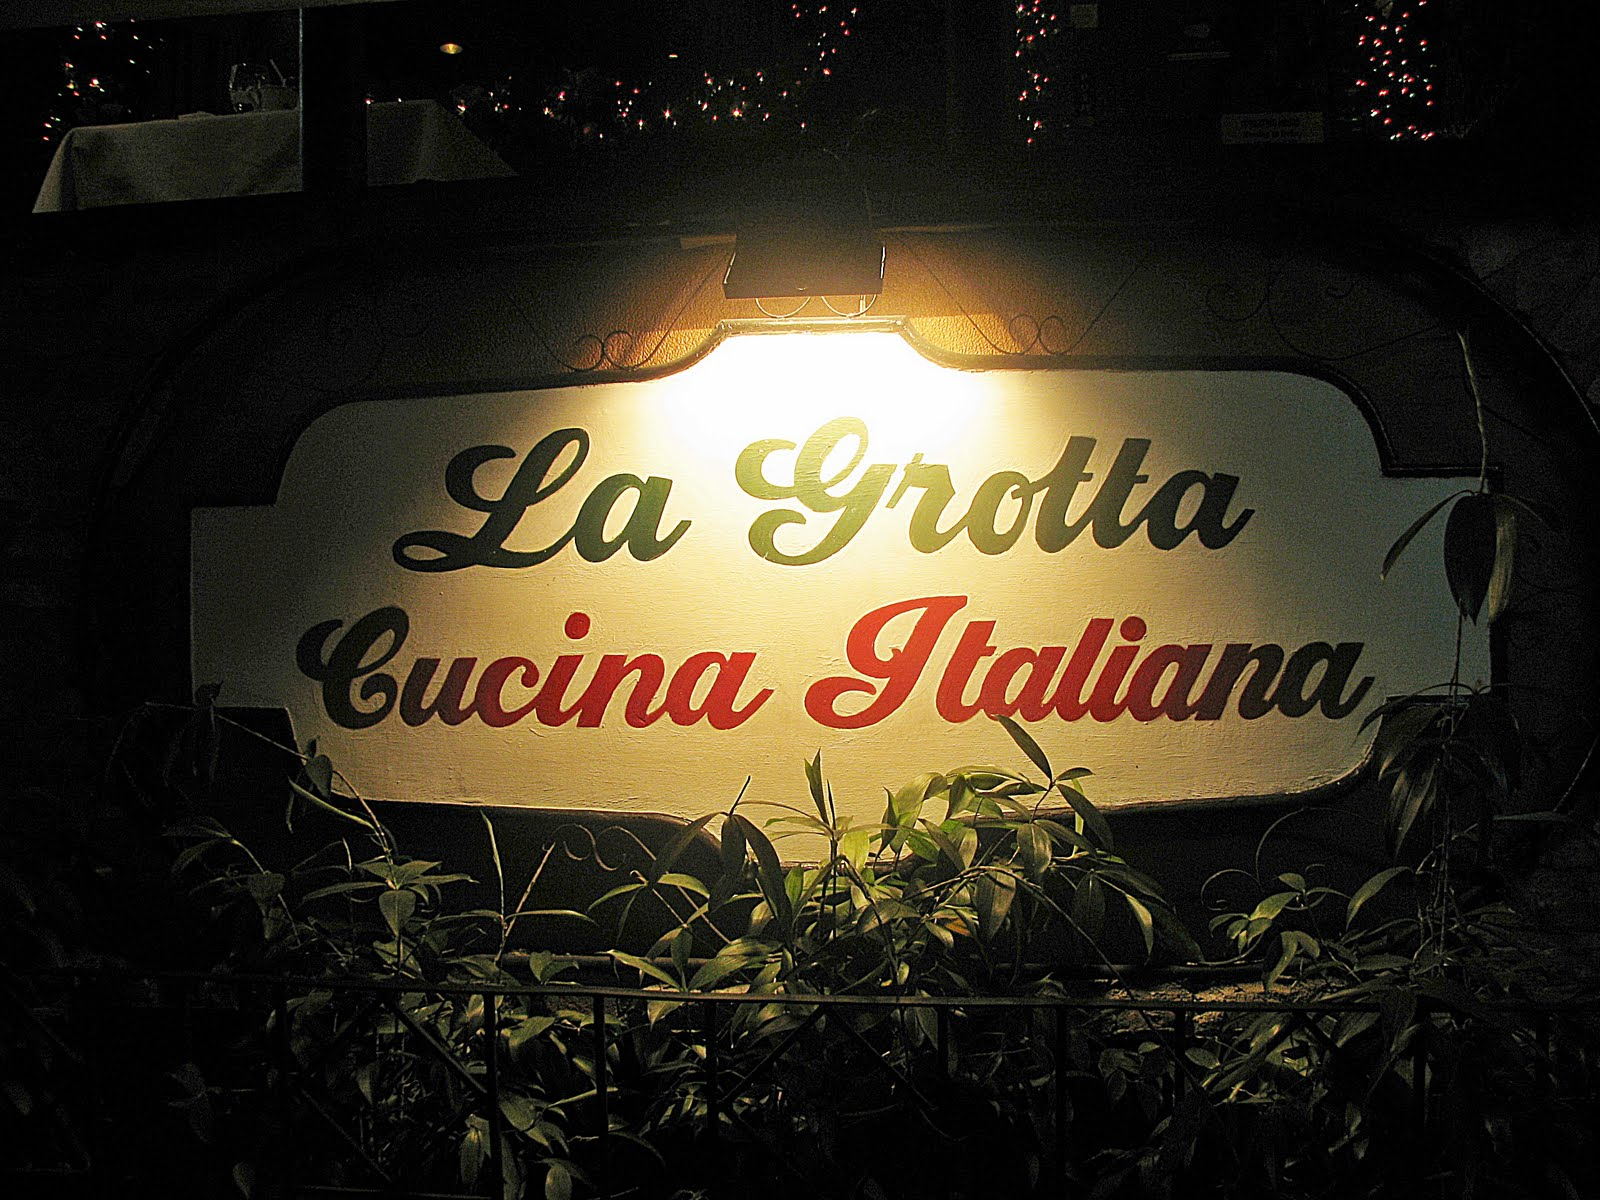 La Grotta Cucina Italiana Menu Live Life Work Hard Party Like Crazy Food Trippin